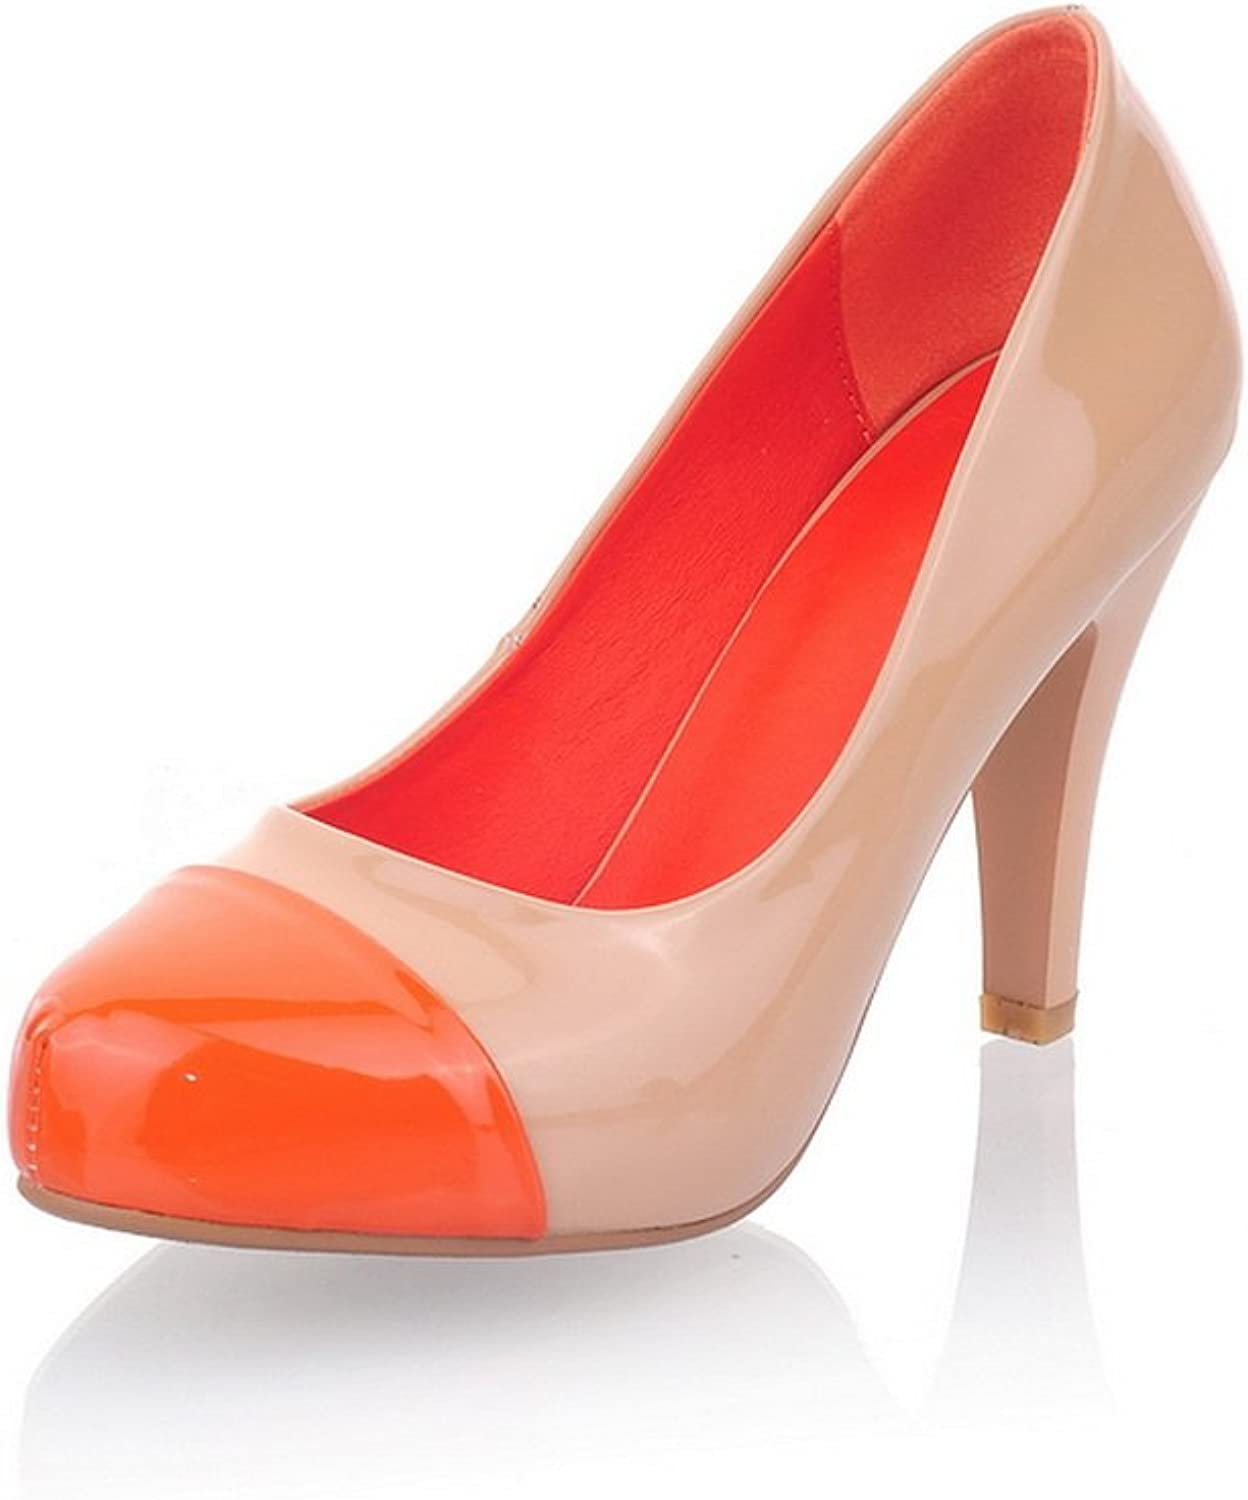 WeenFashion Women's Round-Toe Patent PU Leather High Chunky Heels Pumps with colorant Match